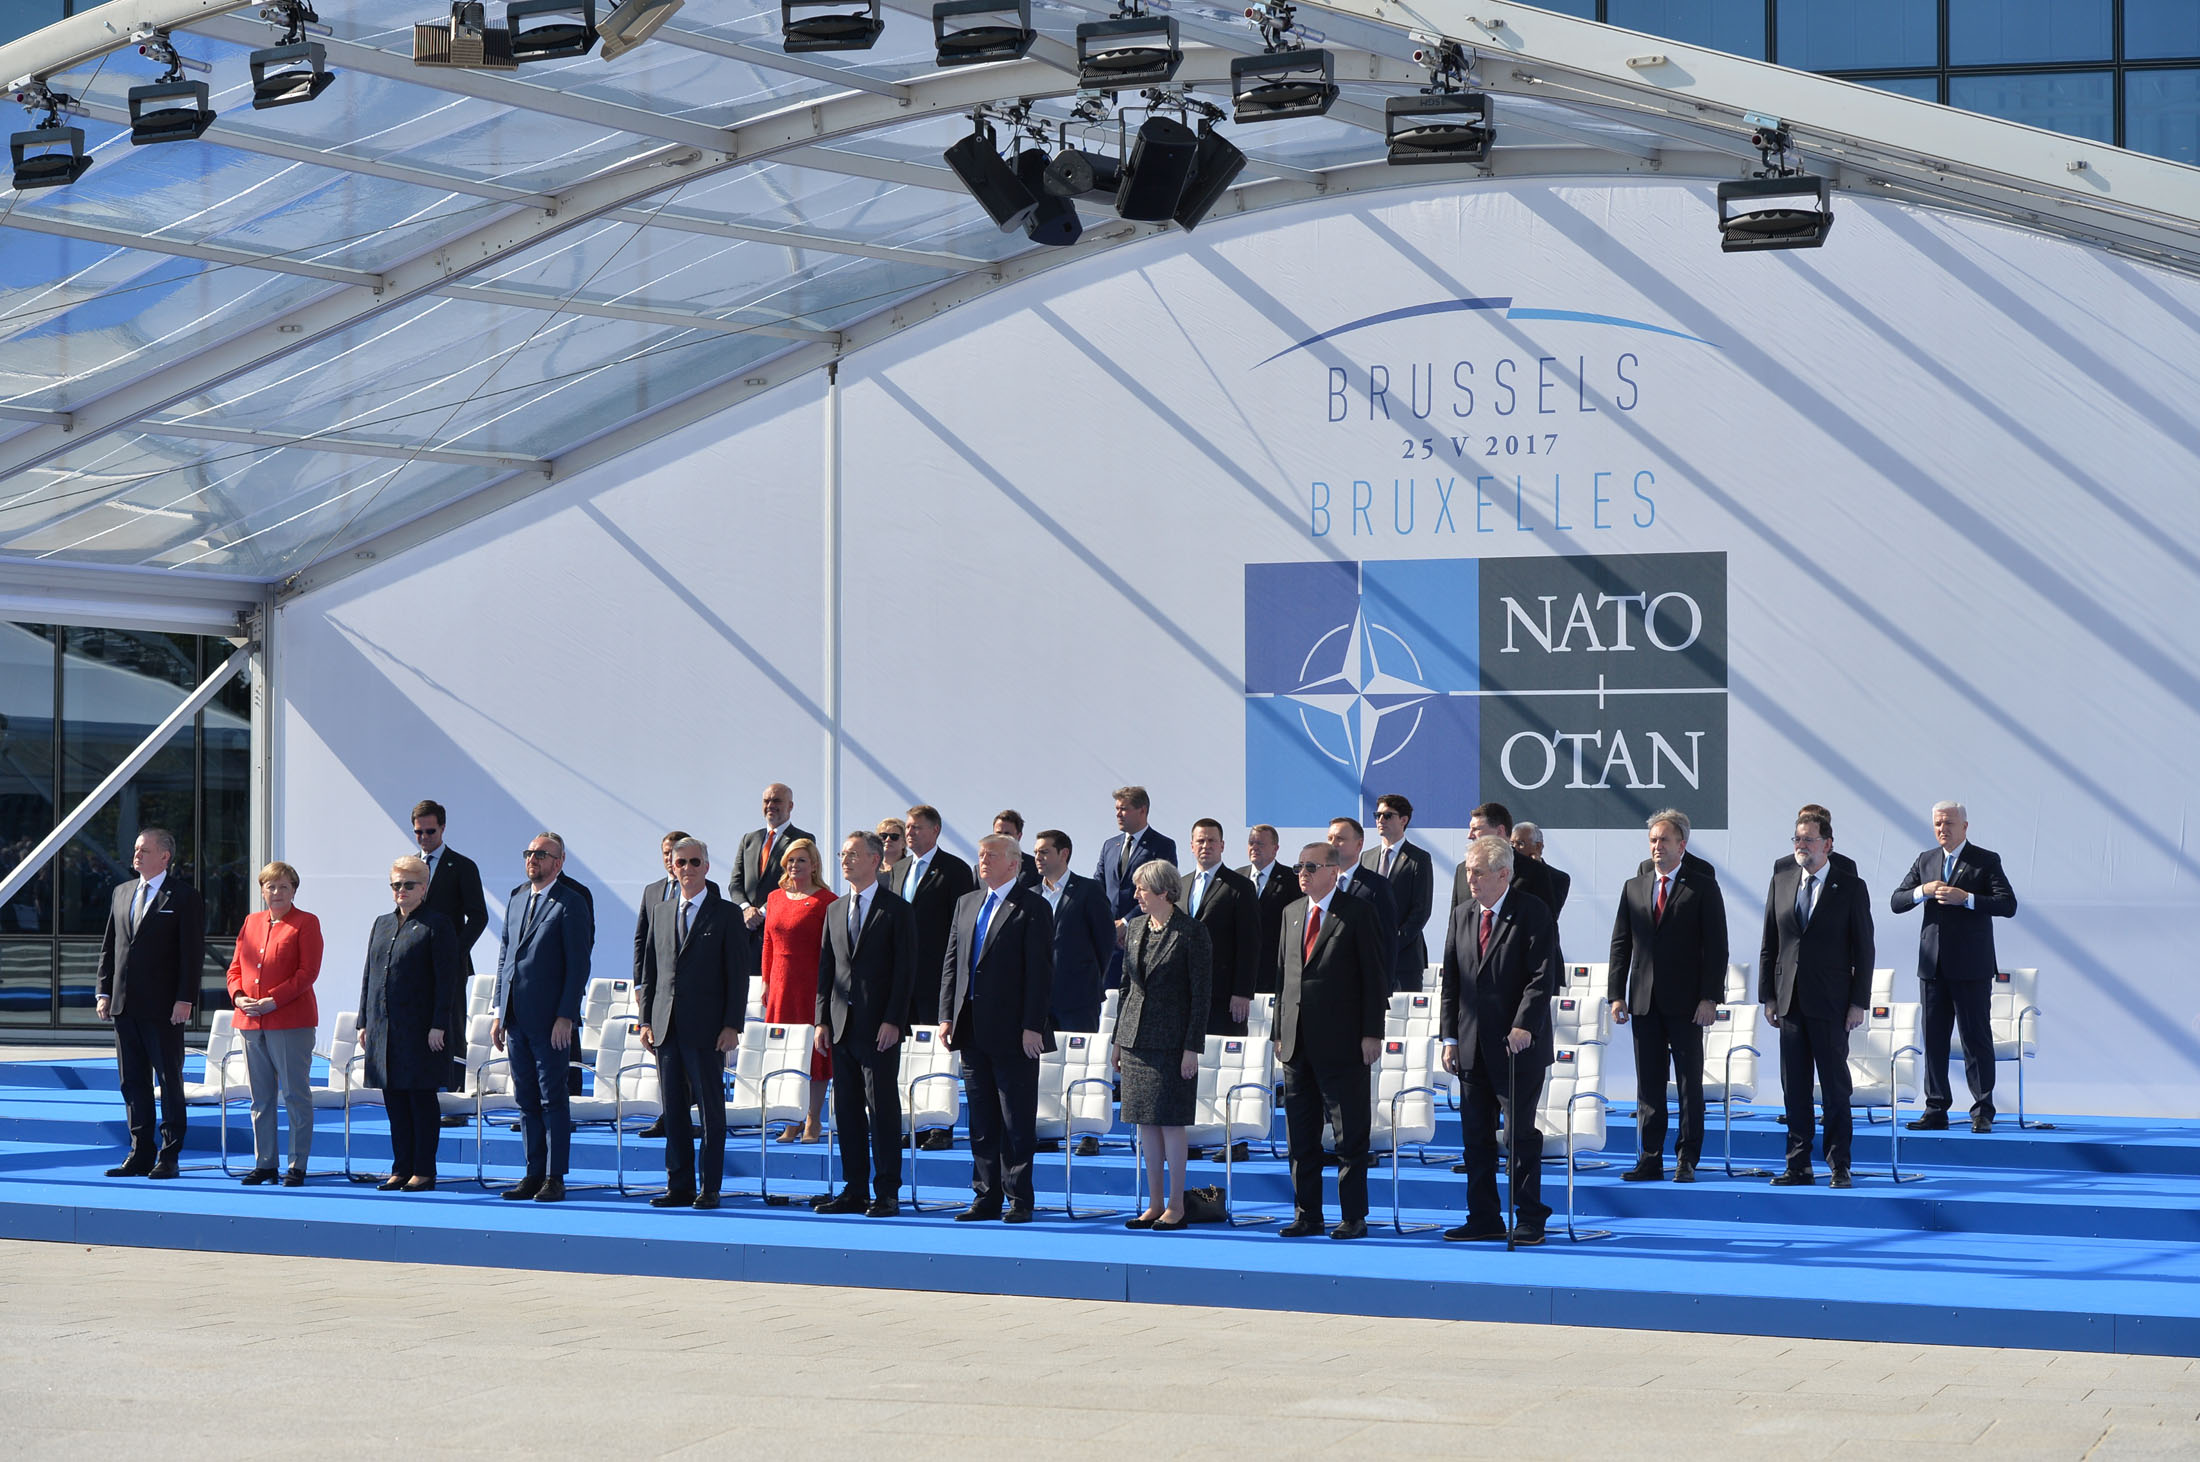 NATO Heads of State and Governement attend the handover ceremony for the new NATO Headquarters